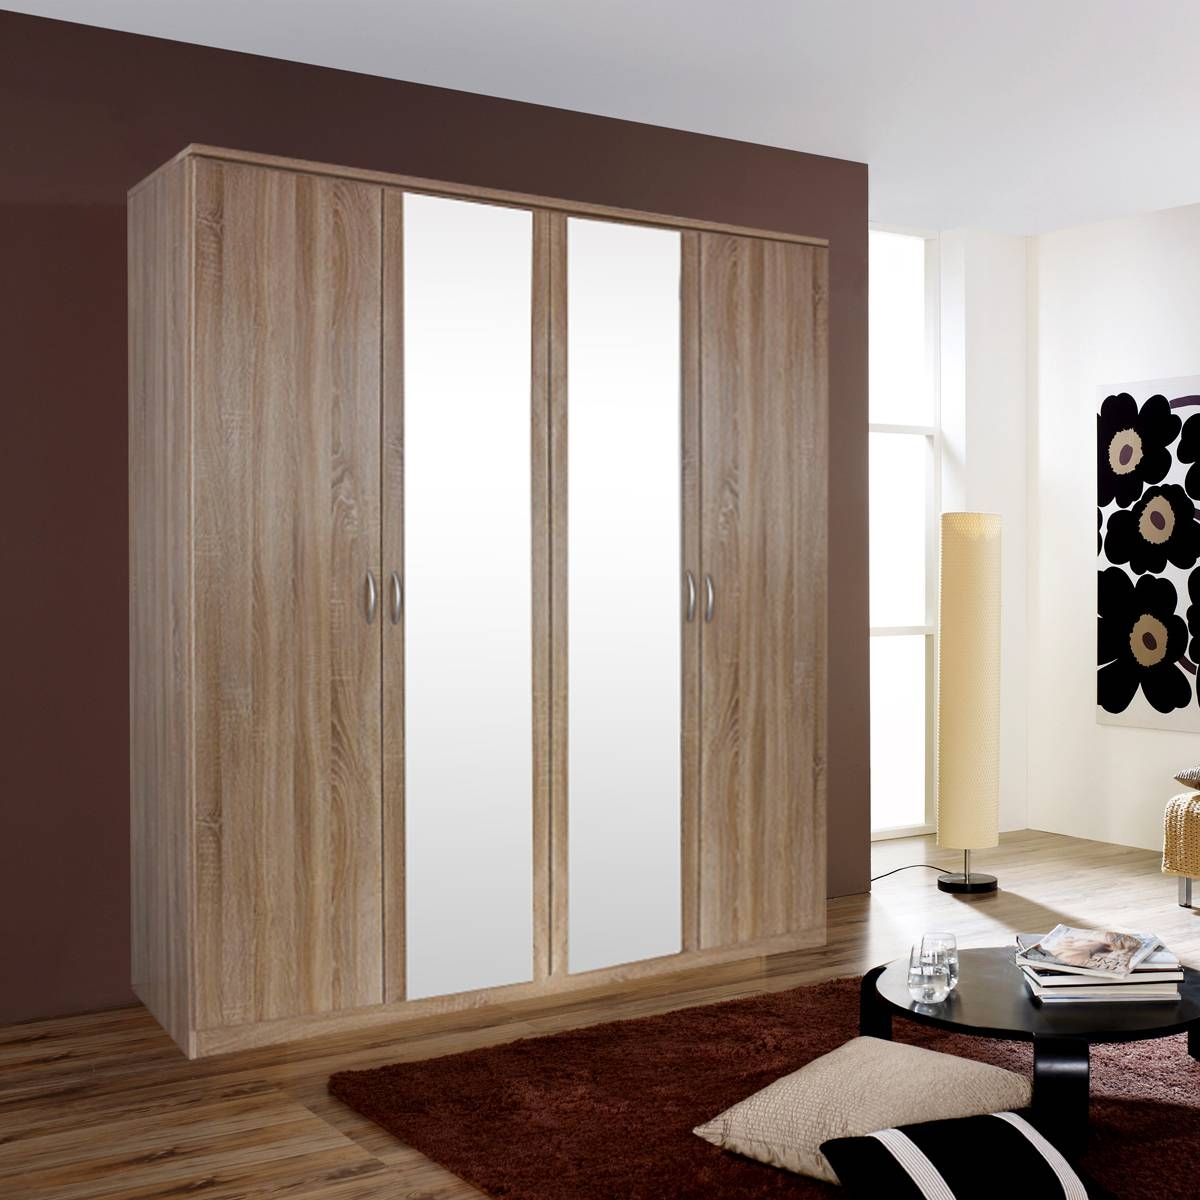 Kent 4 Door Mirror Wardrobe From House Of Reeves Intended For Kent Wardrobes (View 10 of 15)